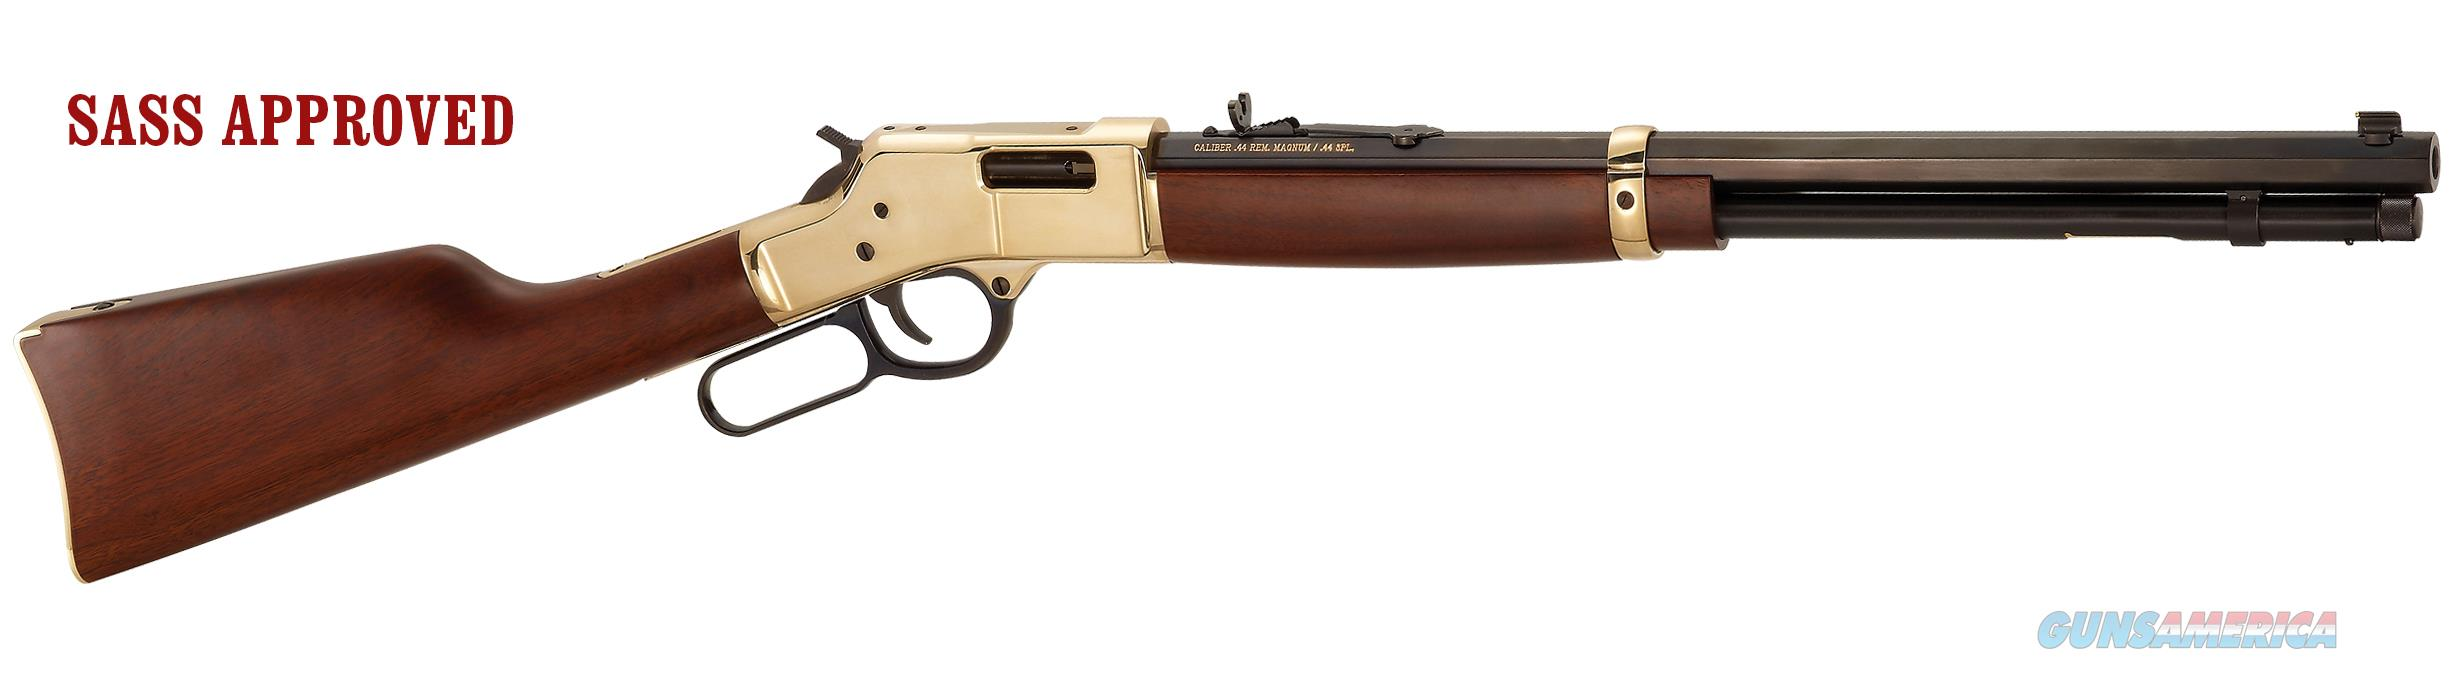 """Henry Big Boy Lever Action 44 Magnum 20"""" 10+1 - New in Box  Guns > Rifles > Henry Rifle Company"""